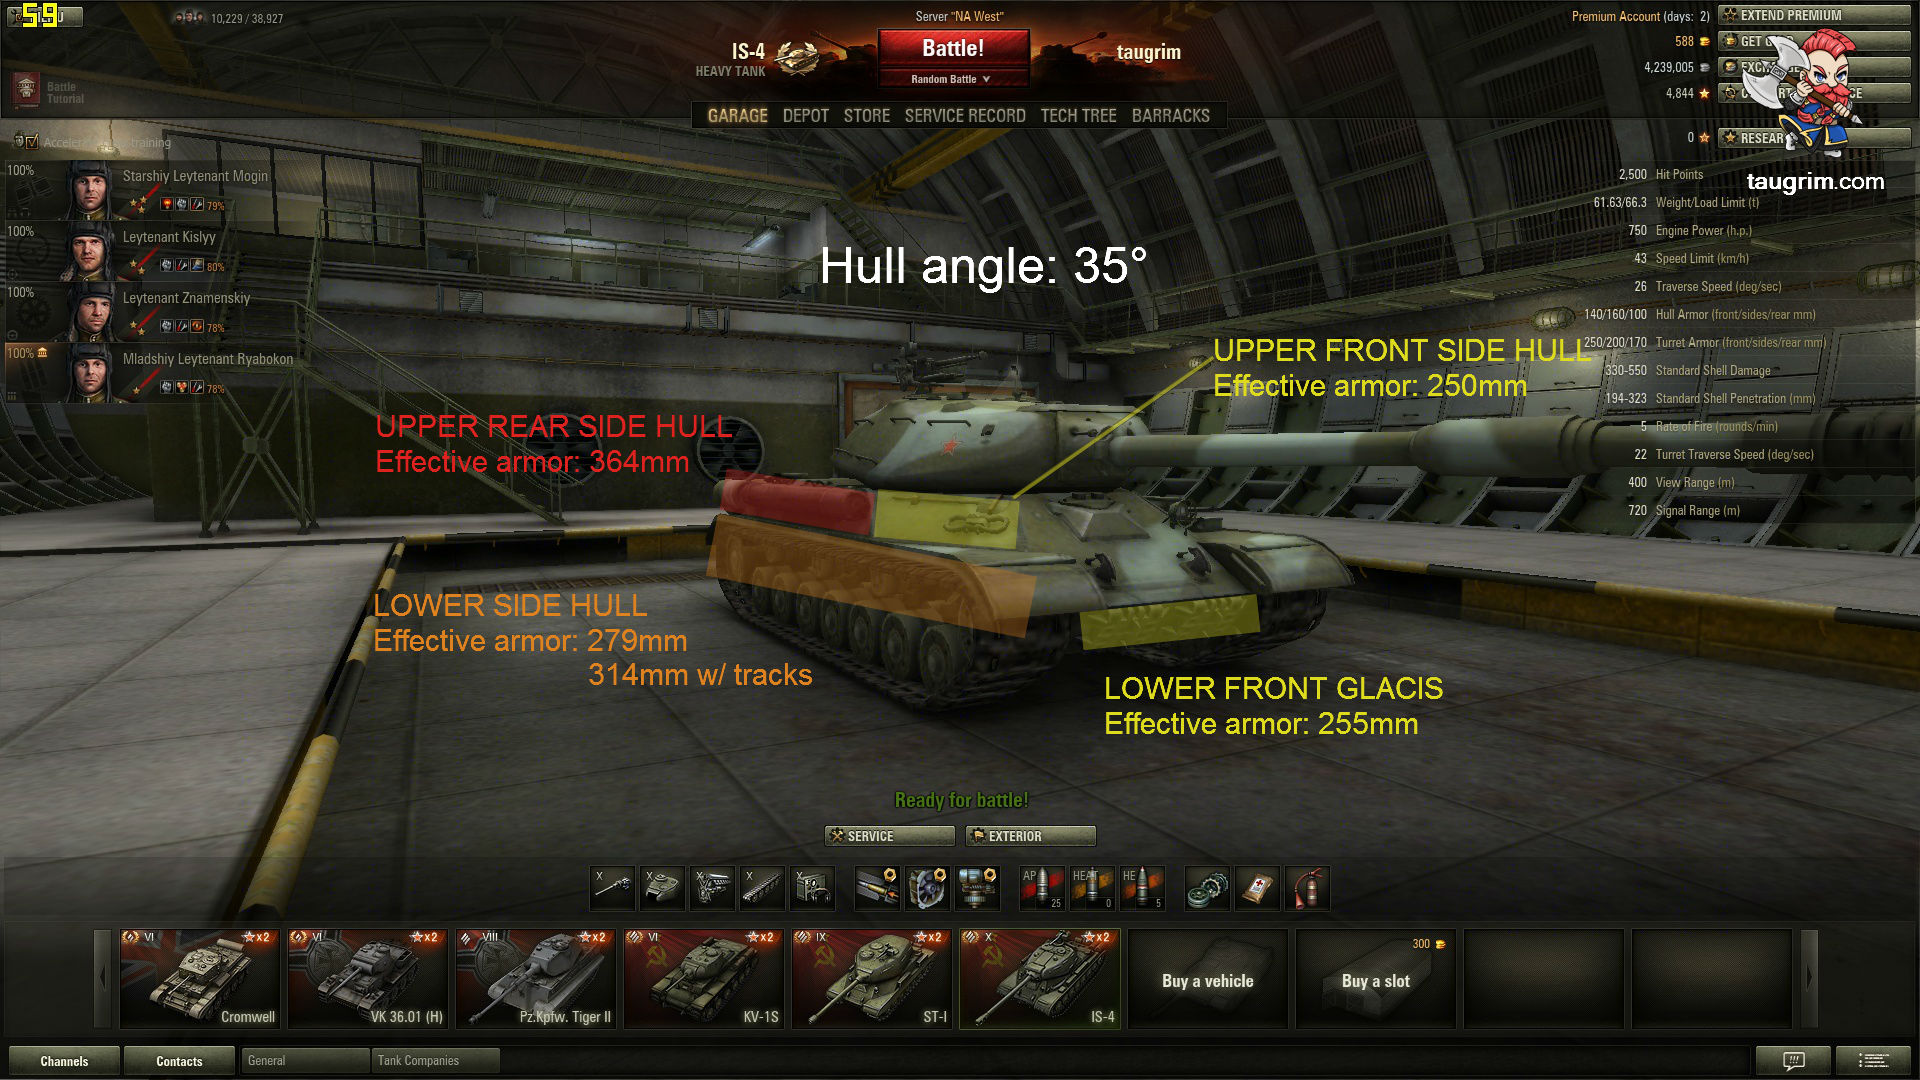 guide to angling in world of tanks | taugrim's mmo blog